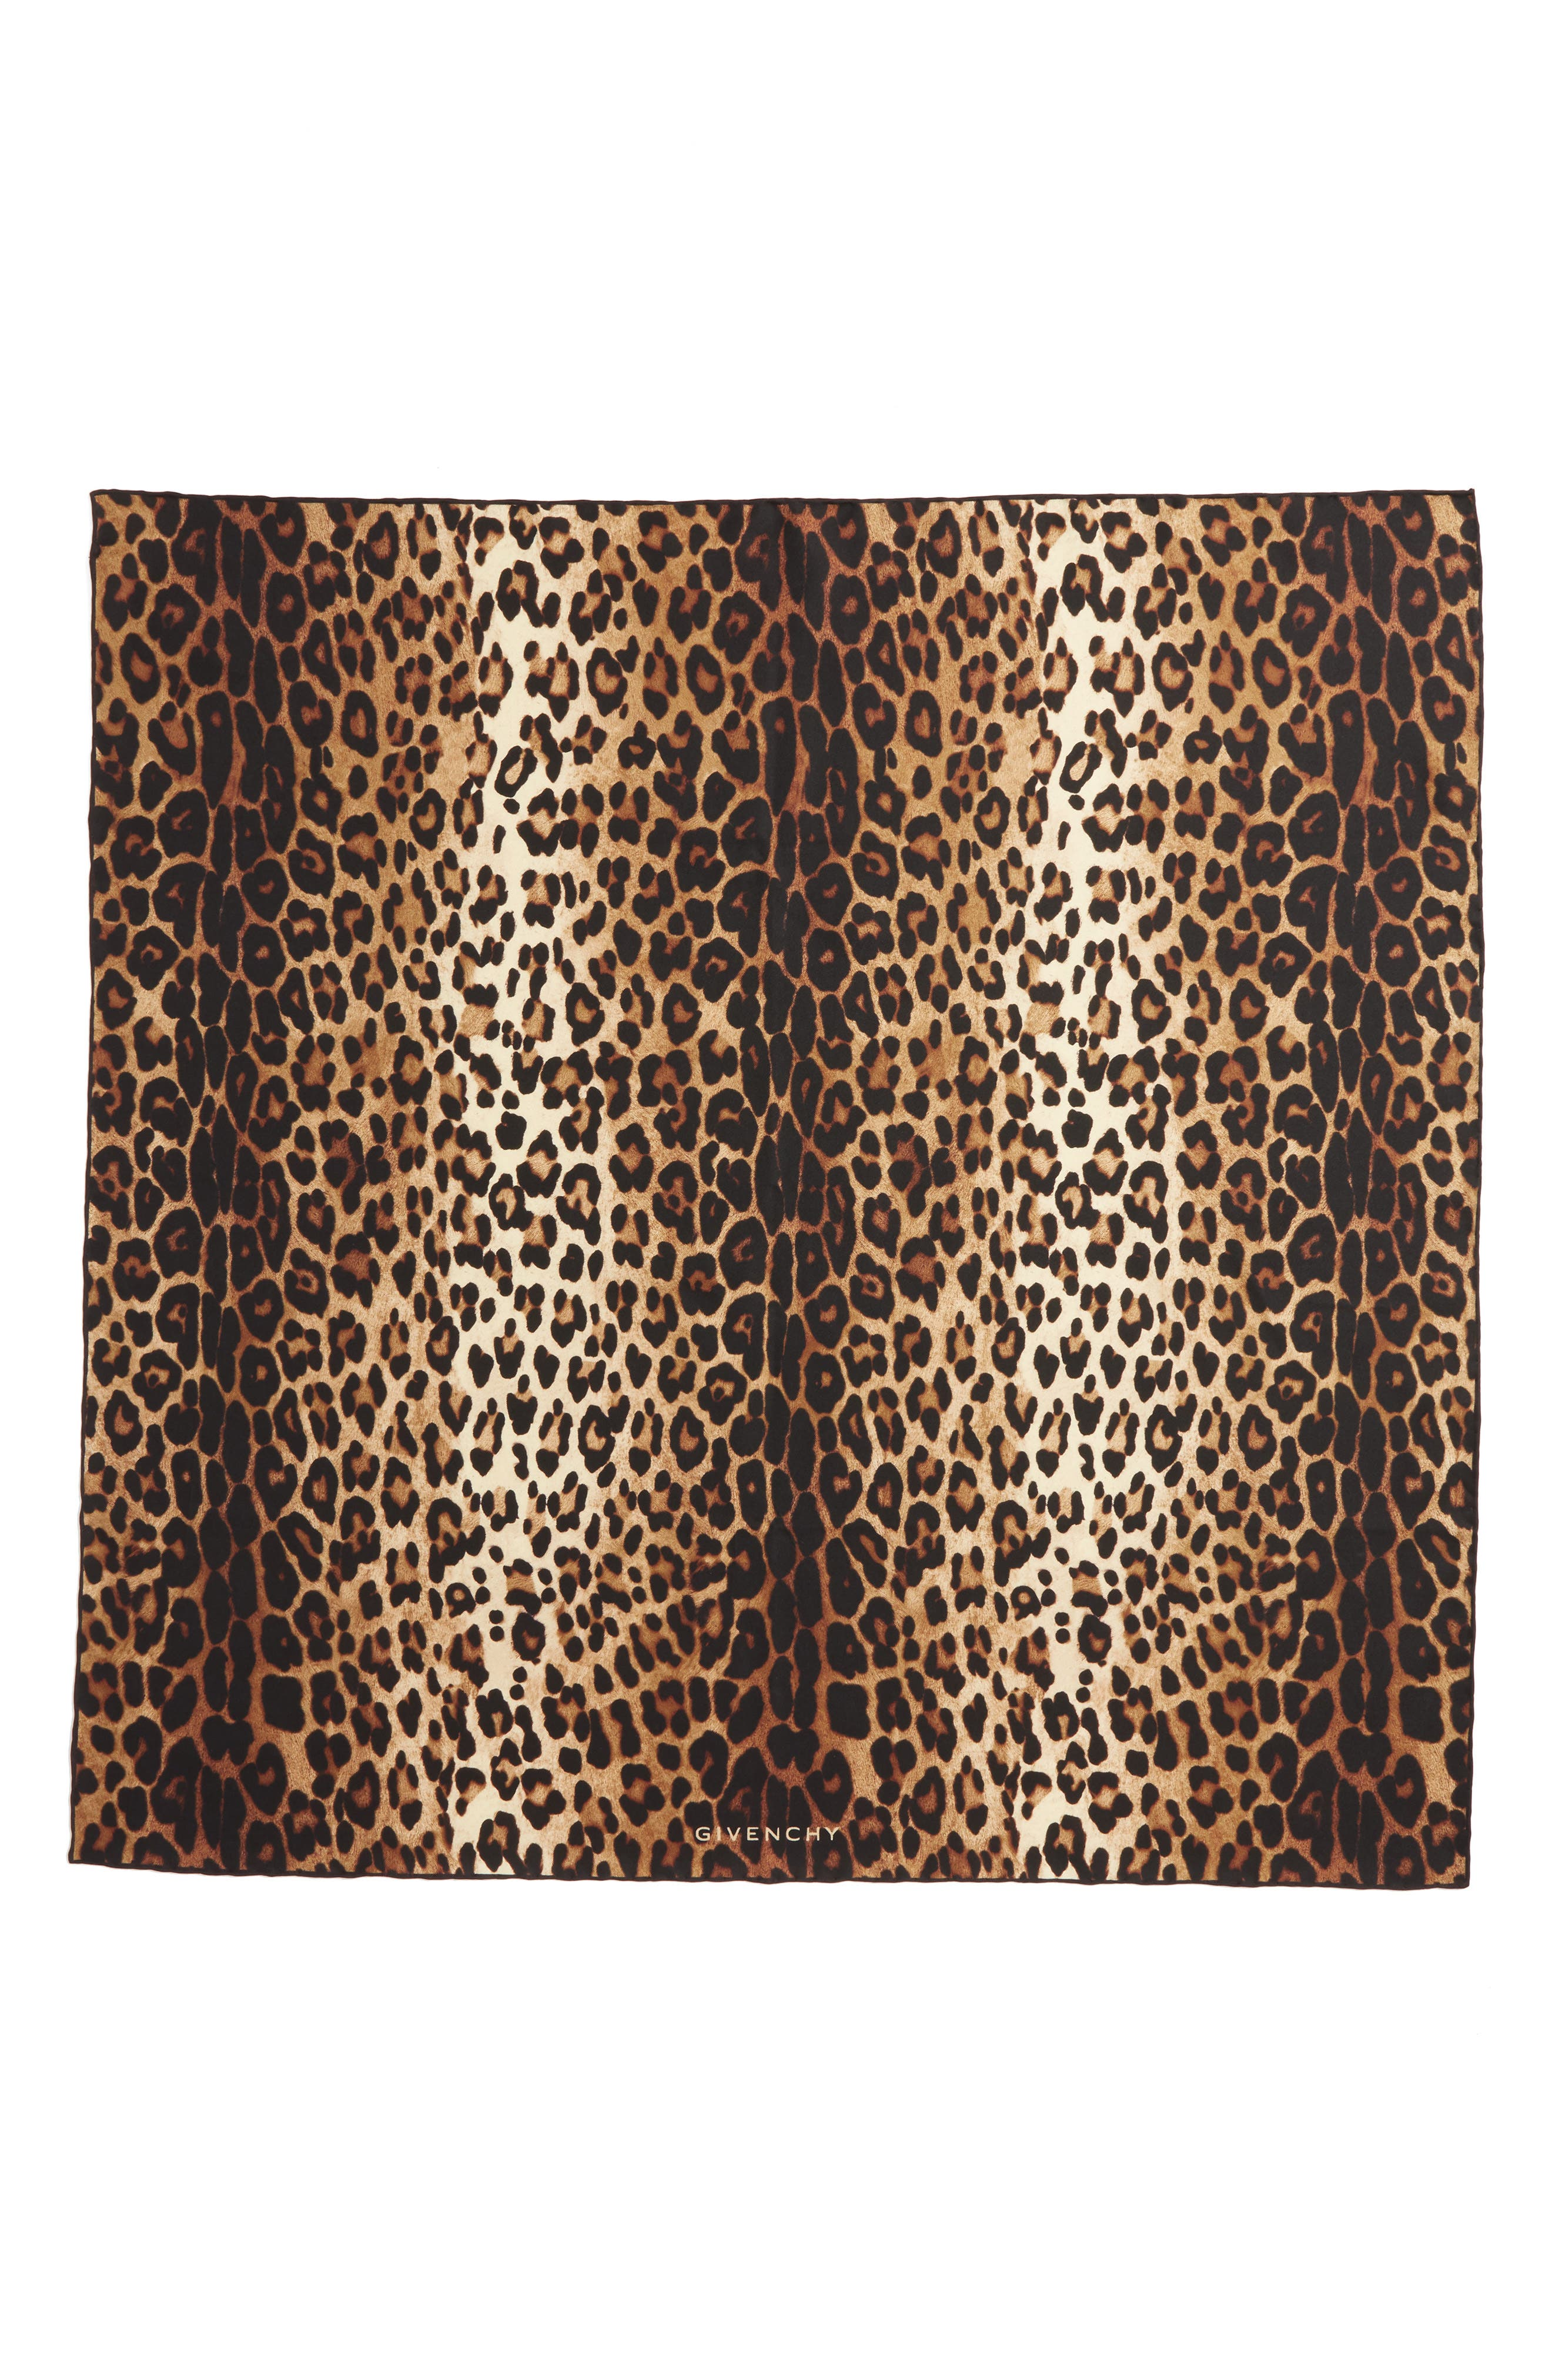 GIVENCHY Leopard Print Square Silk Scarf